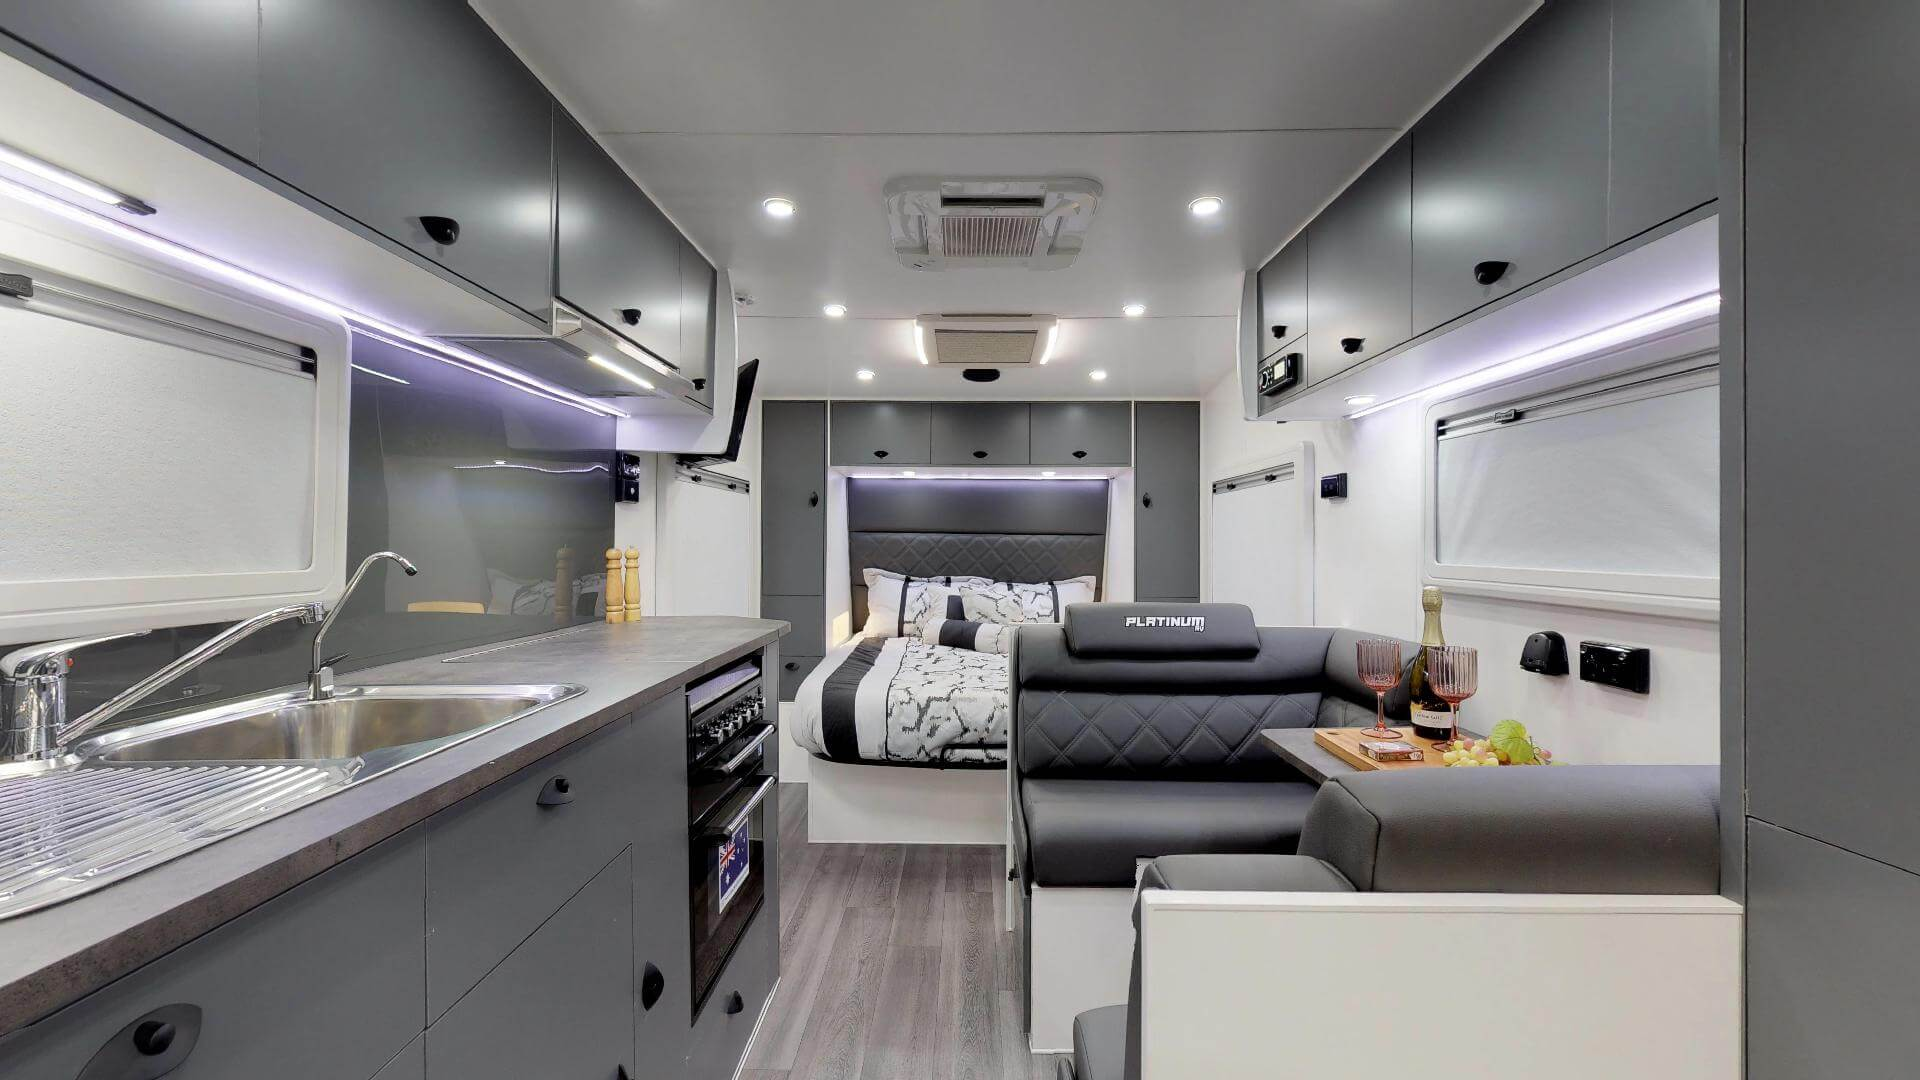 21ft-Platinum-RV-Signature-Offroad-By-Condor-Caravans-02152019_185806